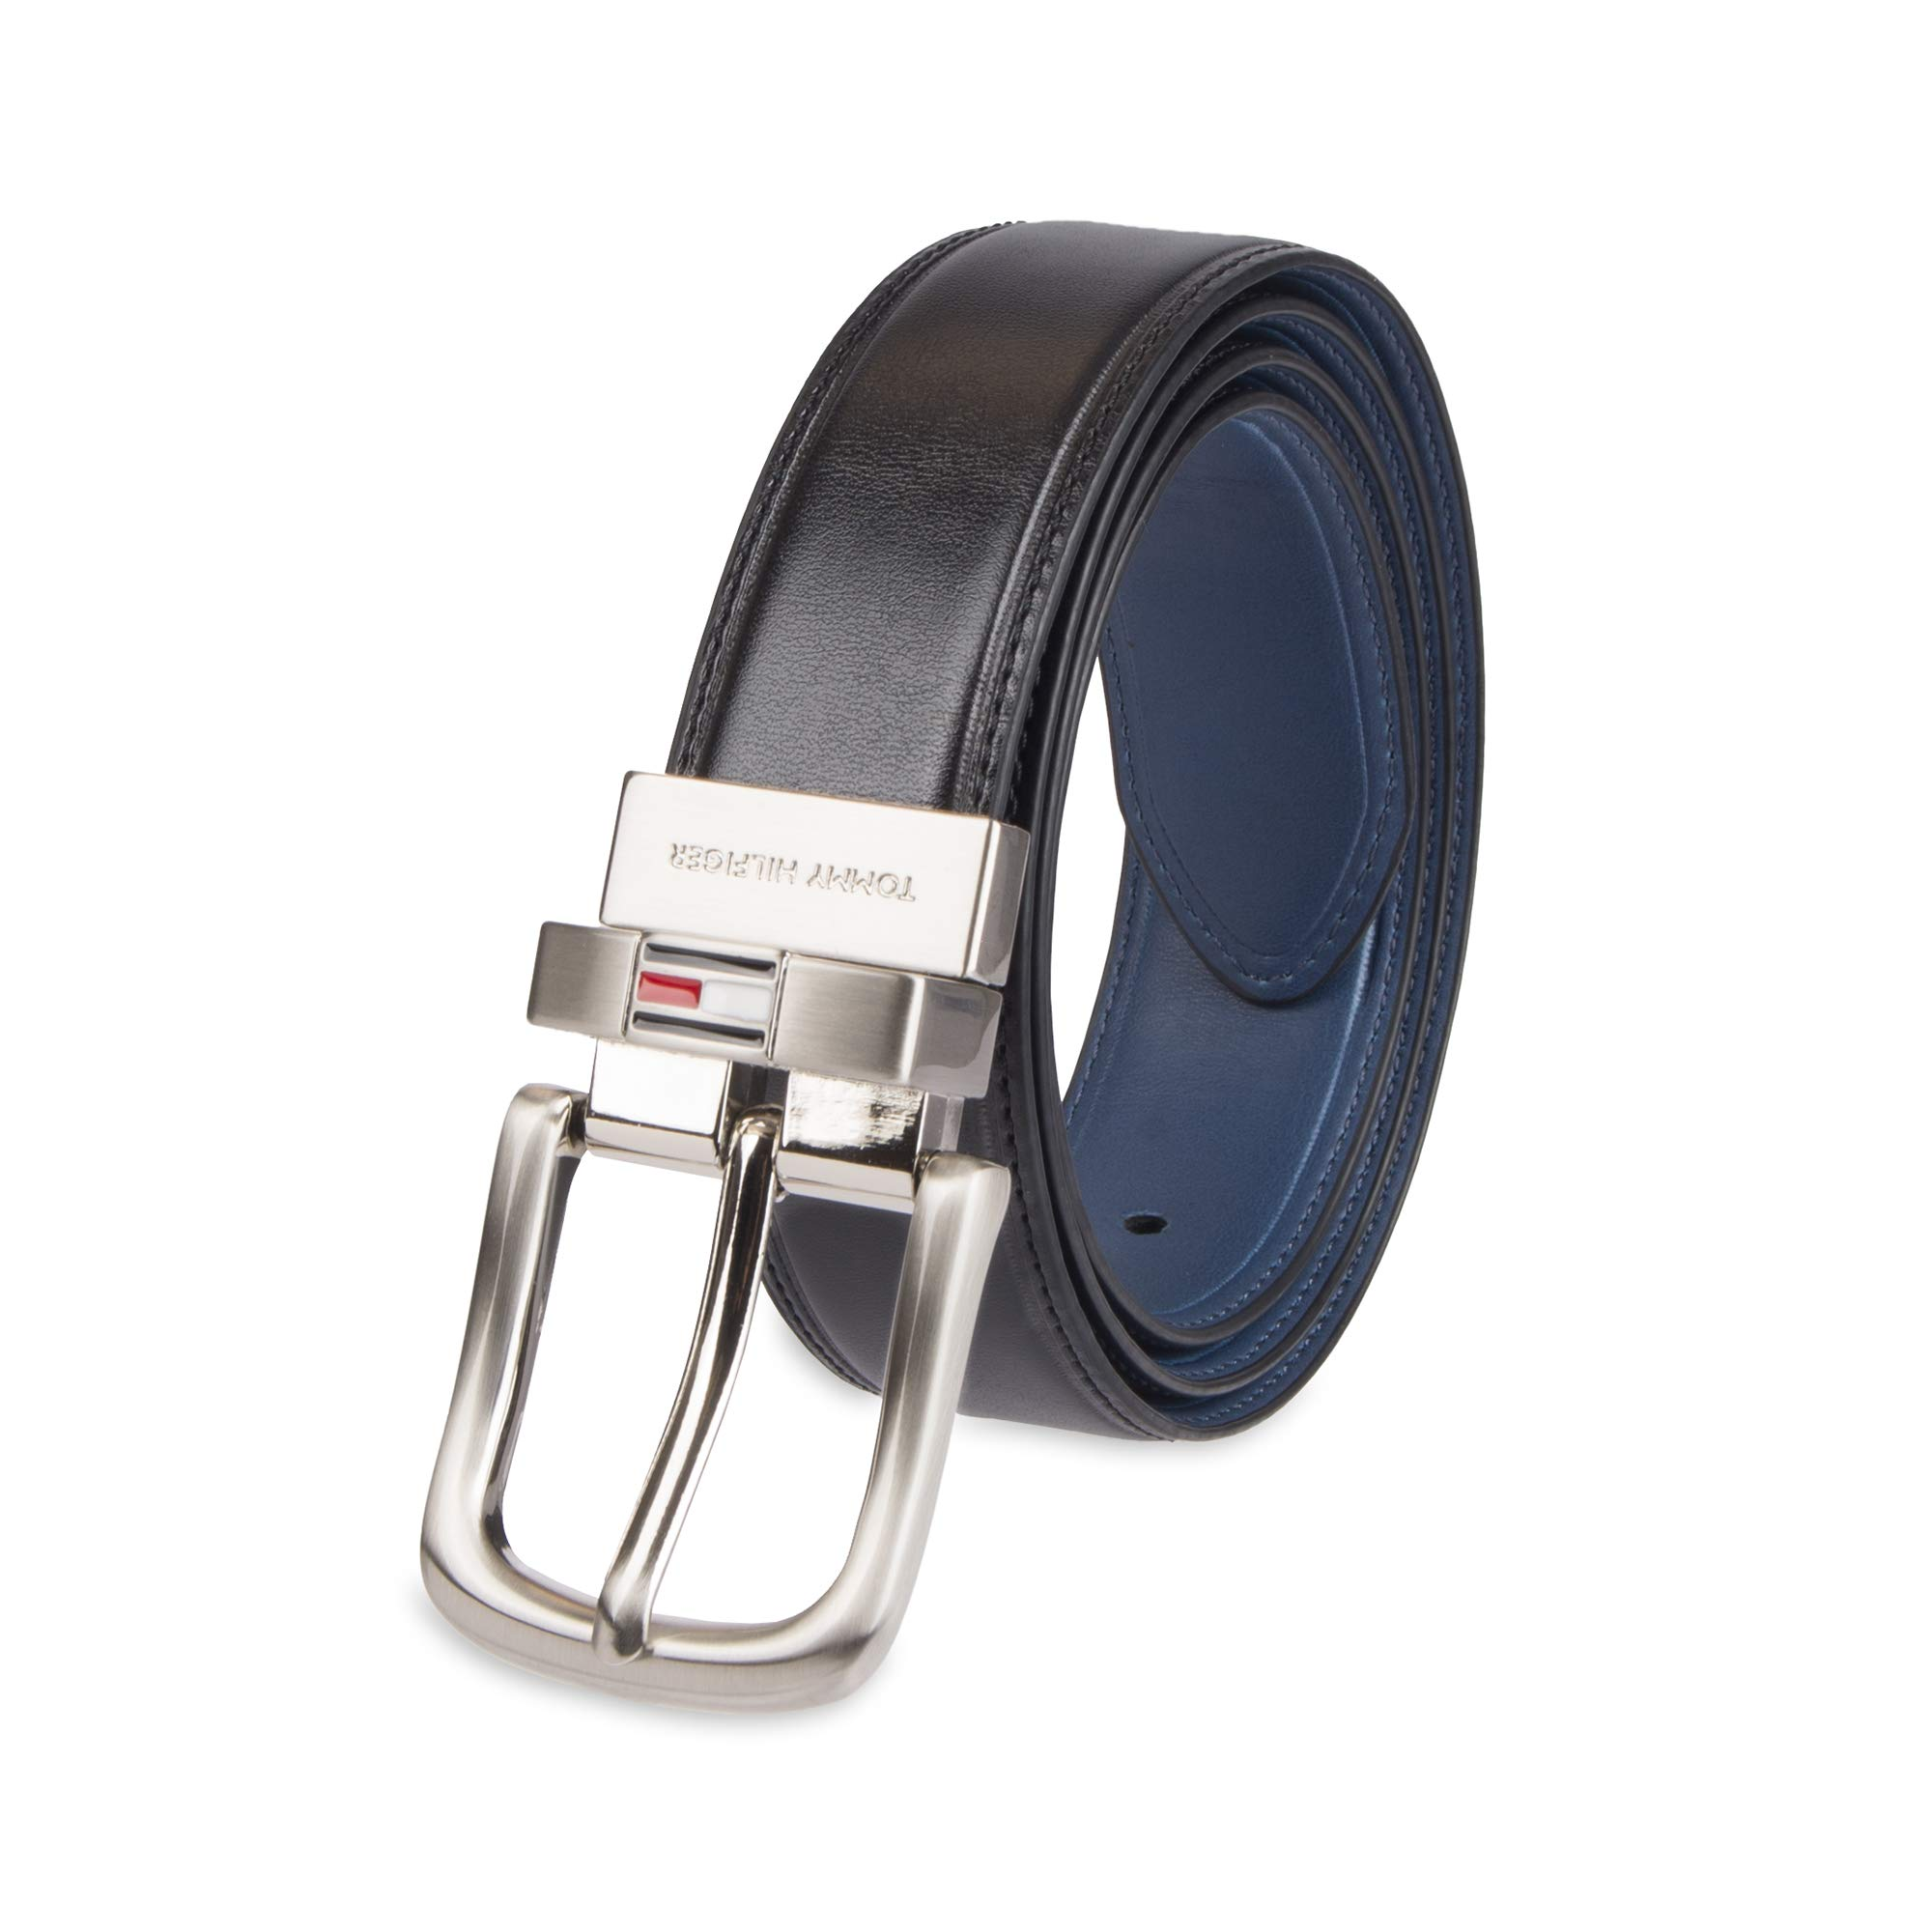 f15cf6694322 Galleon - Tommy Hilfiger Reversible Leather Belt - Casual For Mens Jeans  With Double Sided Strap And Silver Buckle